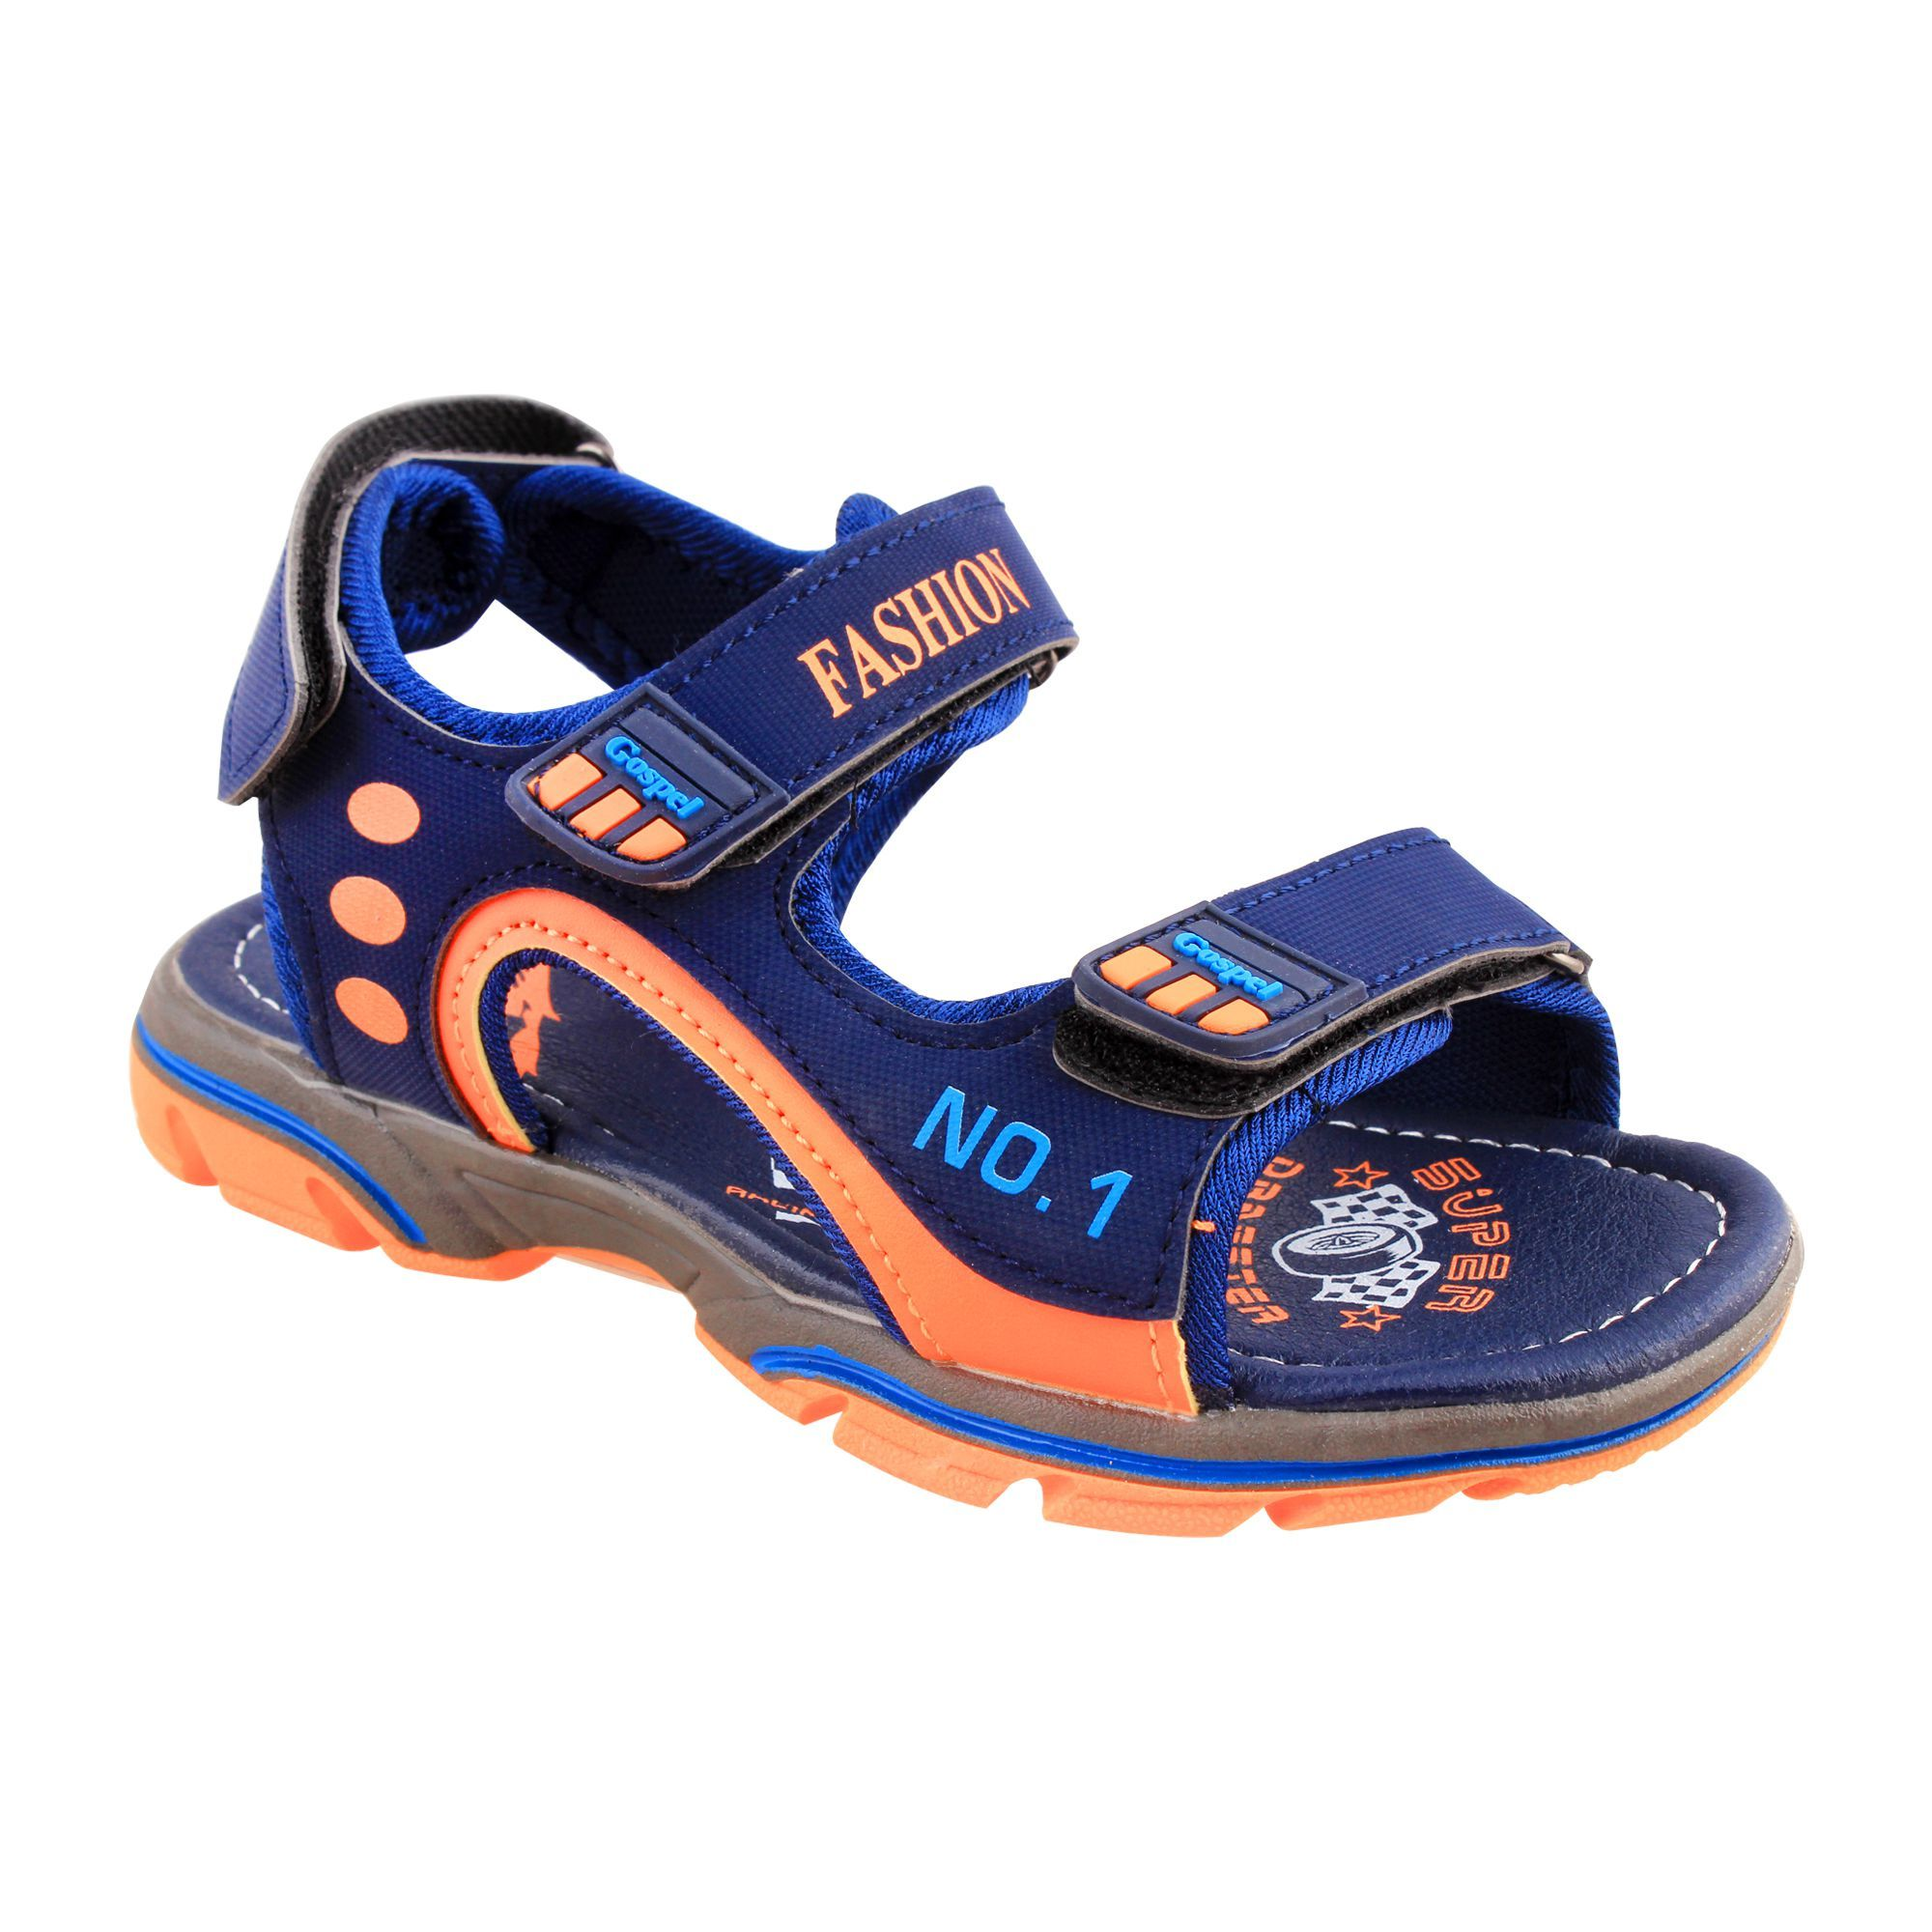 Order Kids Sandals, For Boys, S-221, Blue Online at Special Price in  Pakistan - Naheed.pk